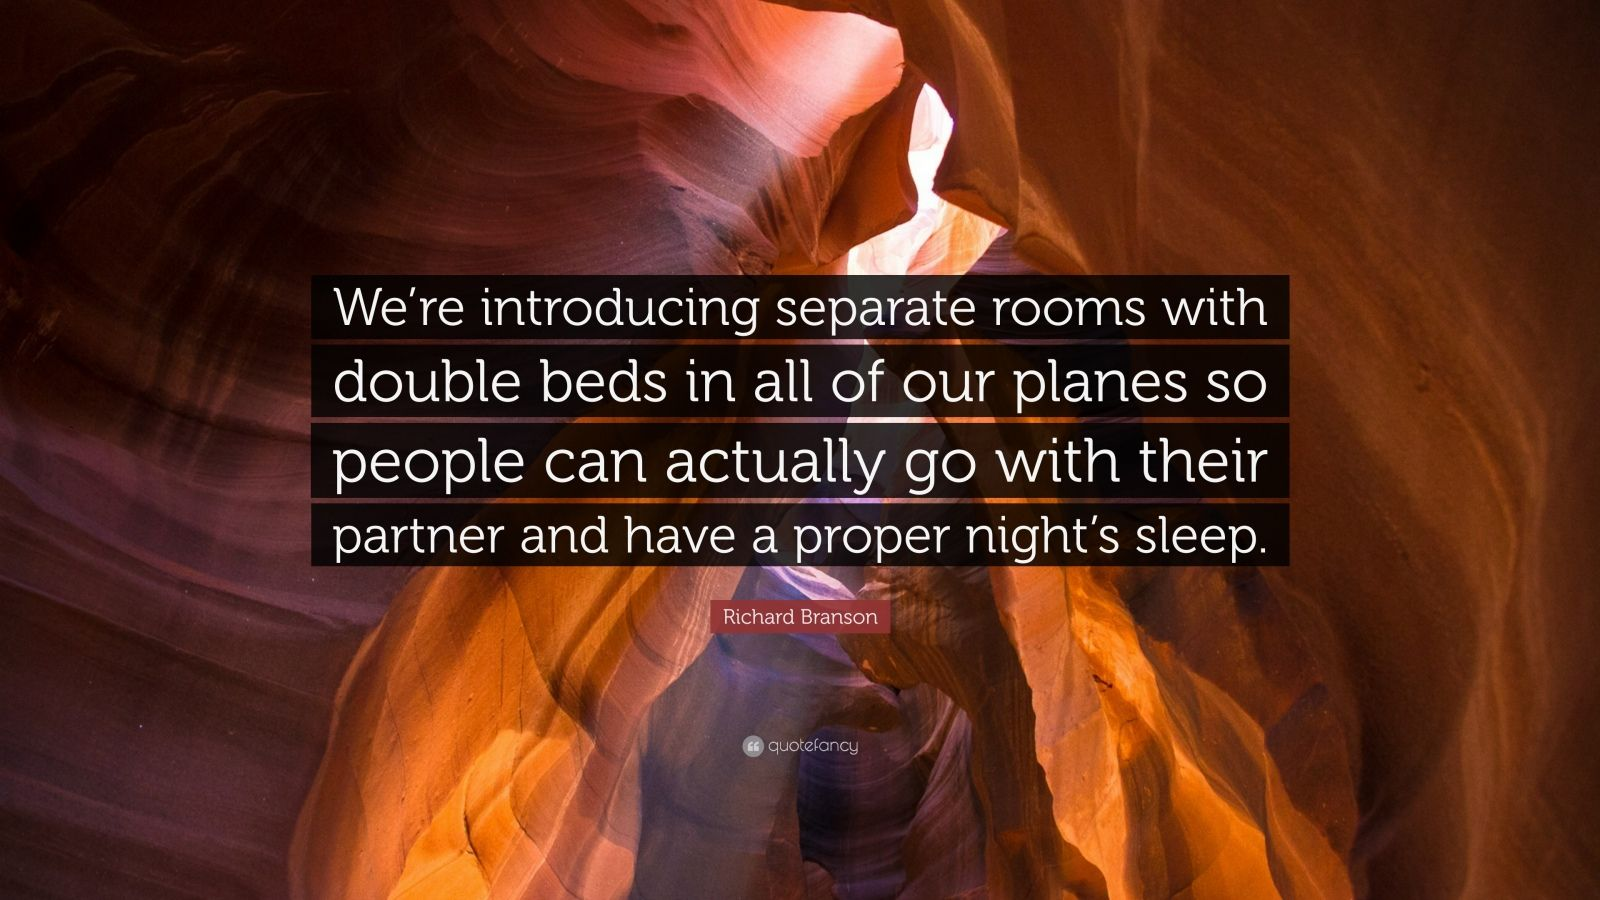 """Richard Branson Quote: """"We're introducing separate rooms with double beds in all of our planes so people can actually go with their partner and have a proper night's sleep."""""""